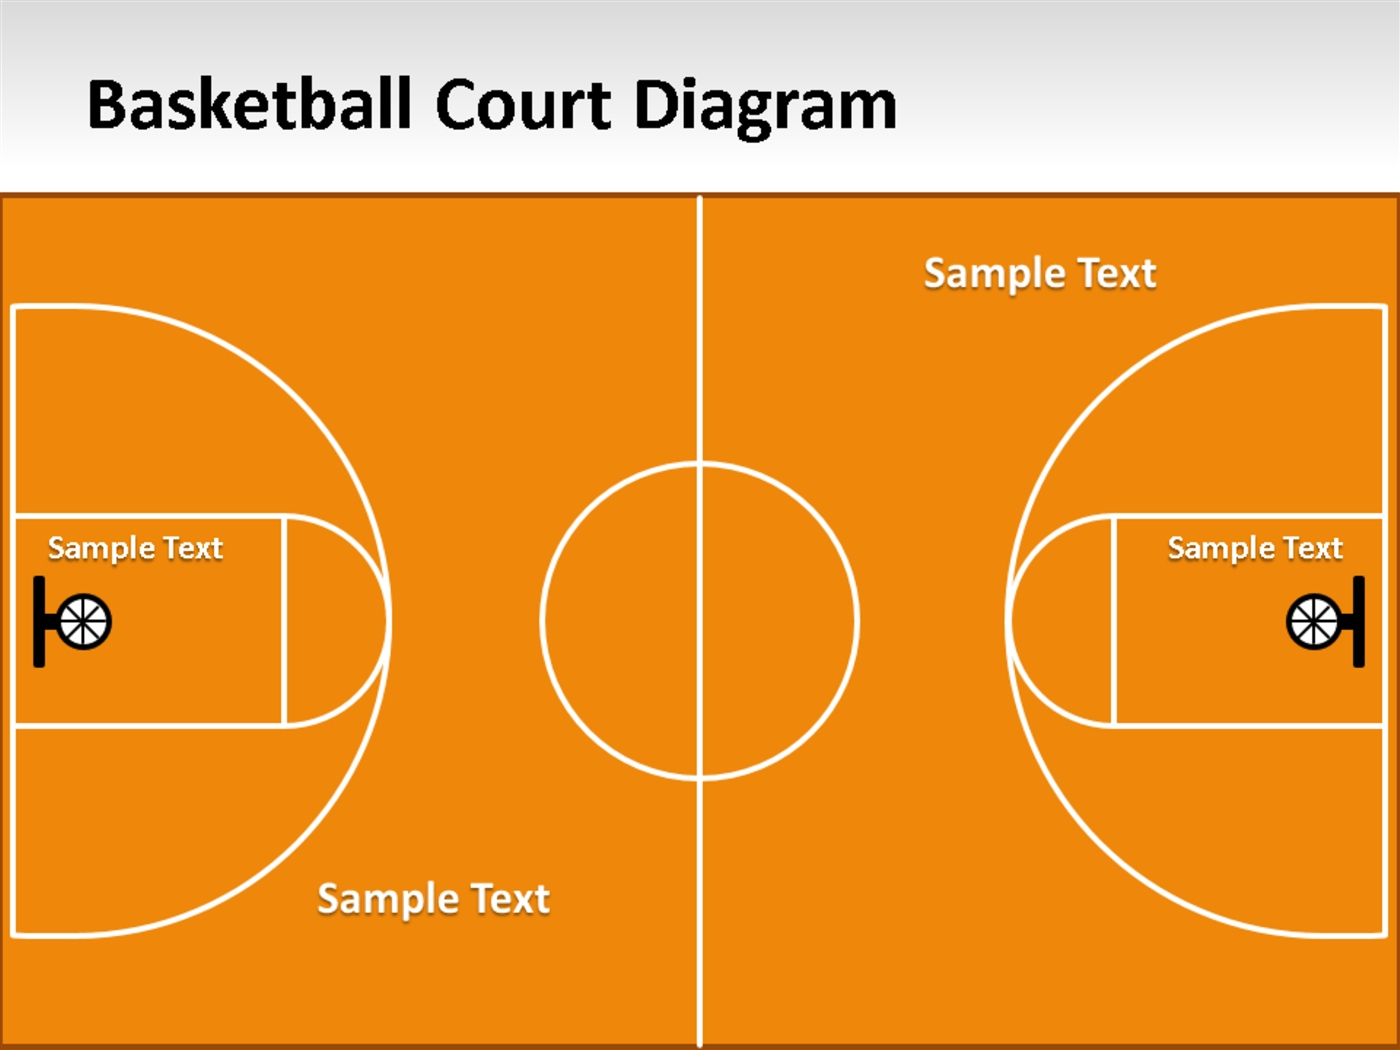 Basketball court diagram for powerpointpptx powerpoint presentation ppt toneelgroepblik Image collections